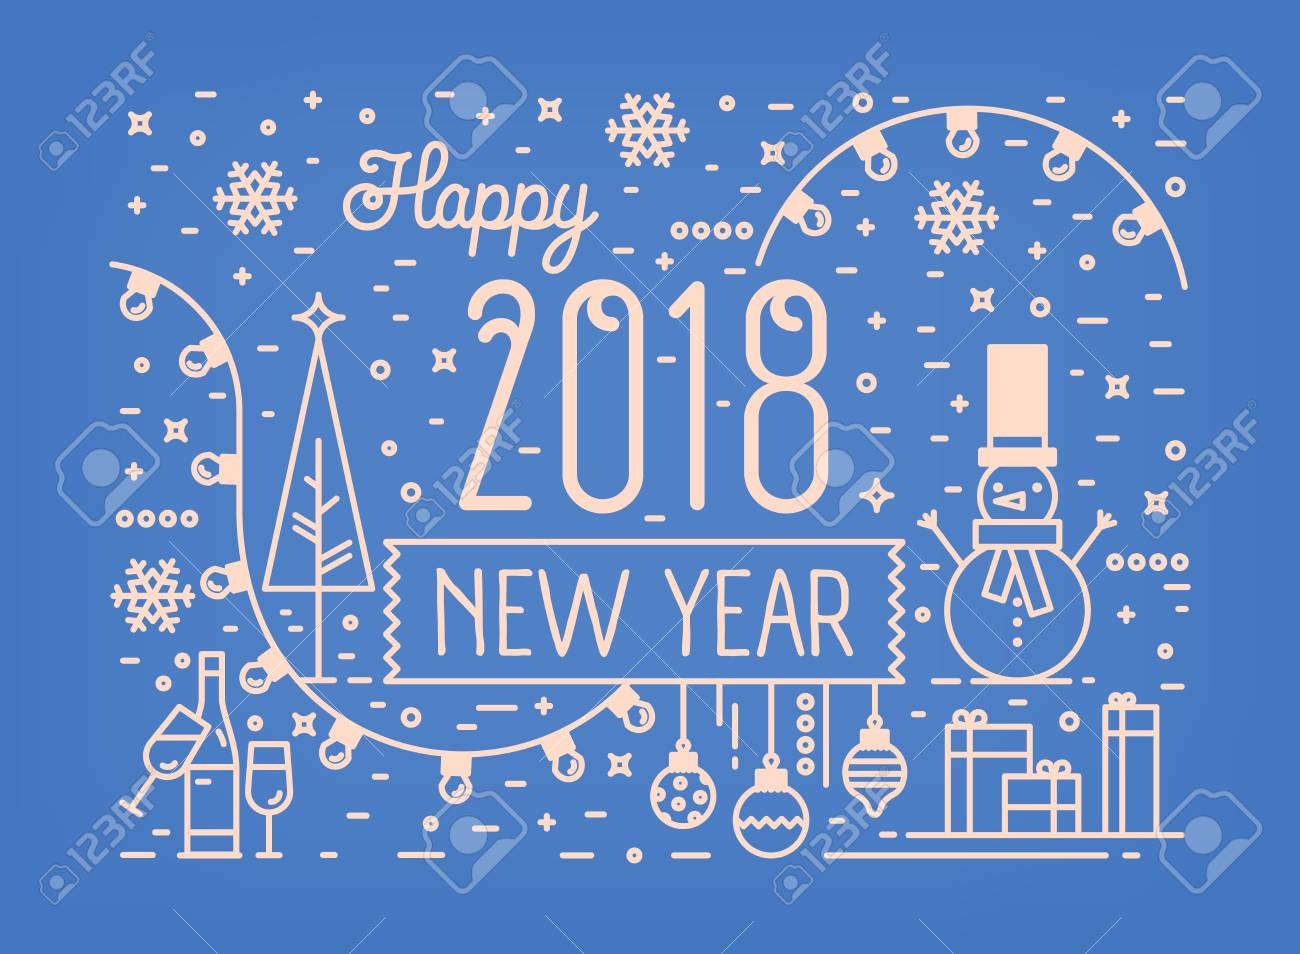 happy new year horizontal banner greeting card or postcard template with traditional holiday decorations